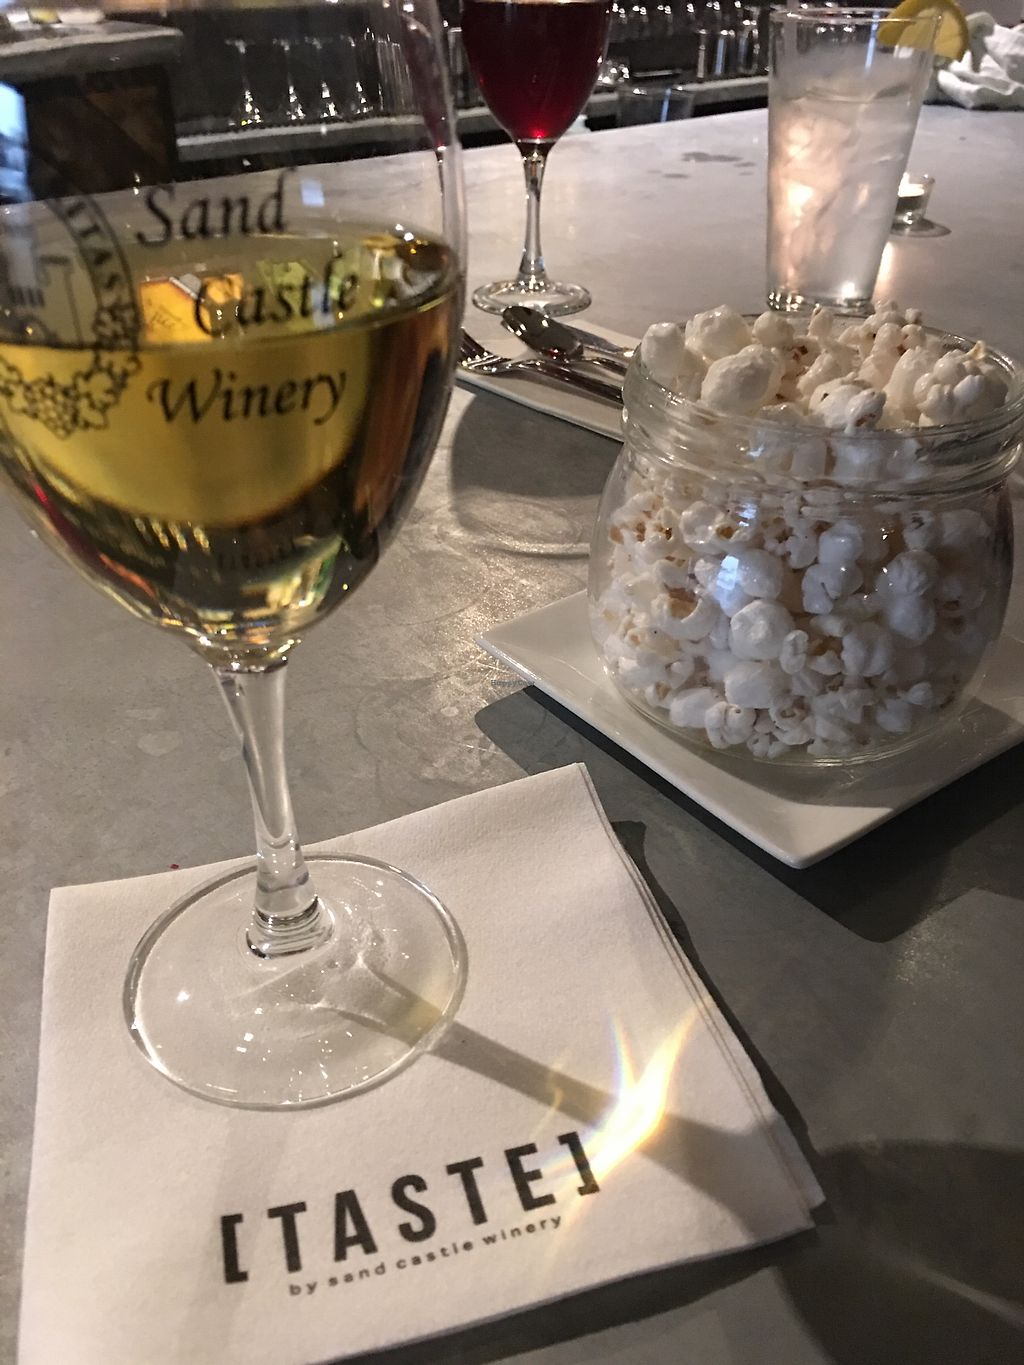 """Photo of Taste - Sand Castle Winery  by <a href=""""/members/profile/JackiN"""">JackiN</a> <br/>Lavender popcorn <br/> November 4, 2017  - <a href='/contact/abuse/image/93182/321846'>Report</a>"""